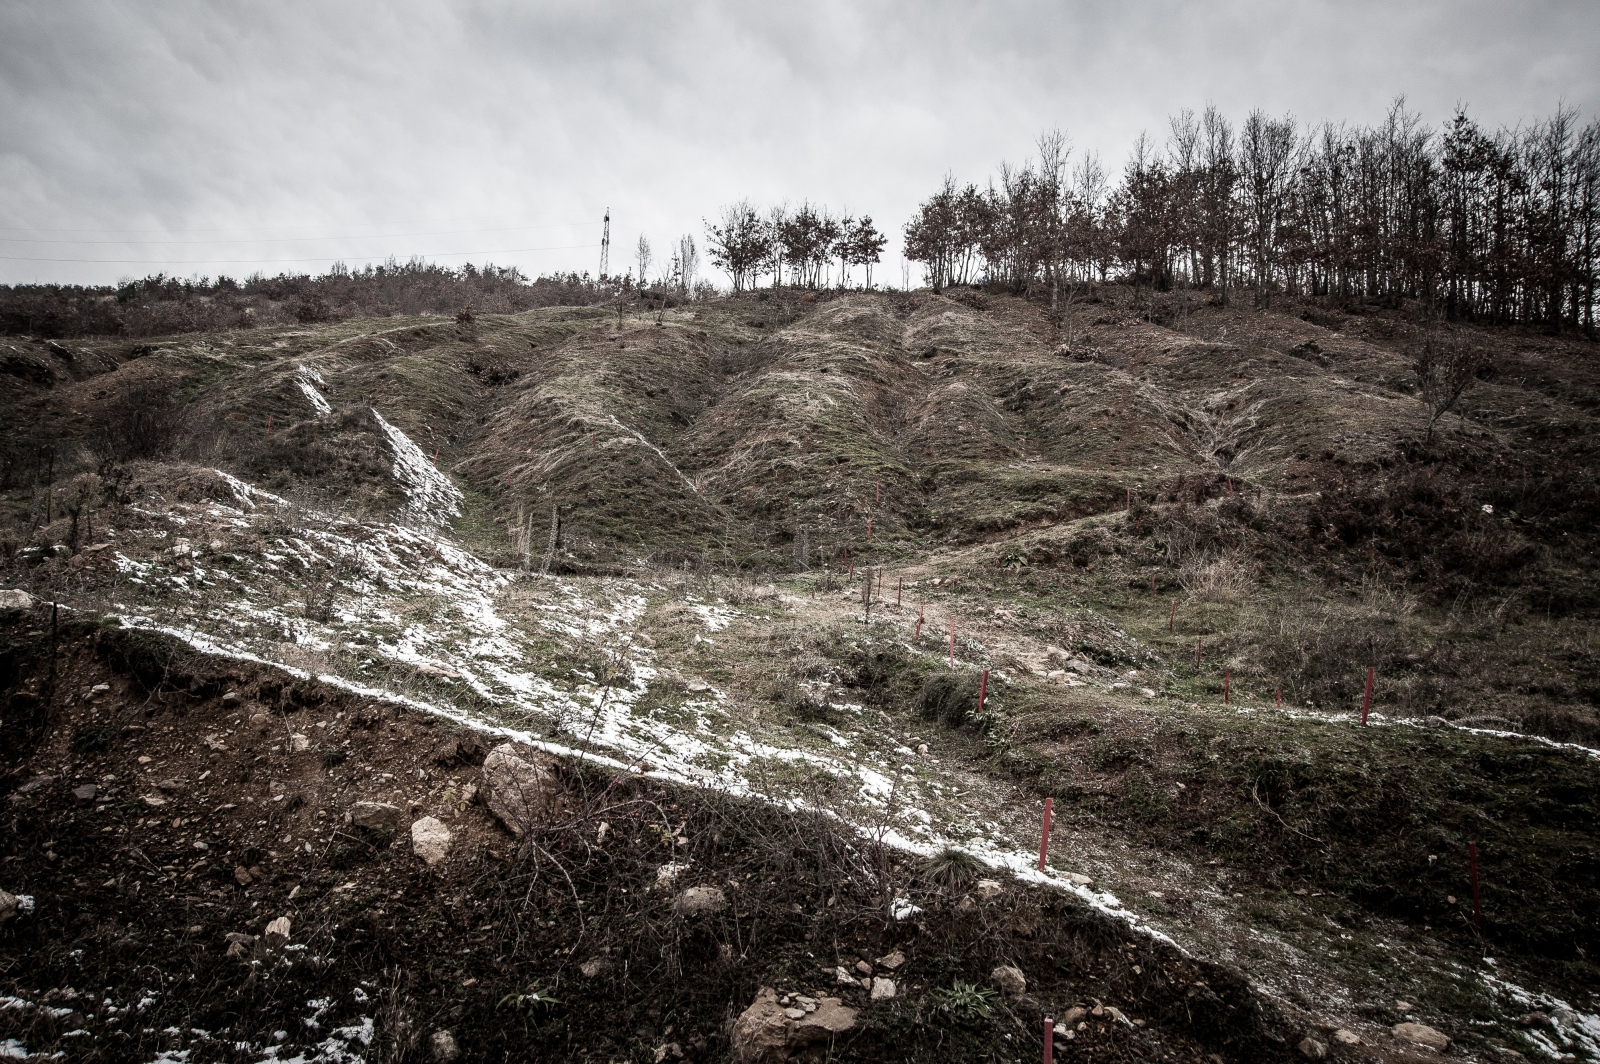 A minefield marked with red stakes in northwestern Kosovo. December 2016.